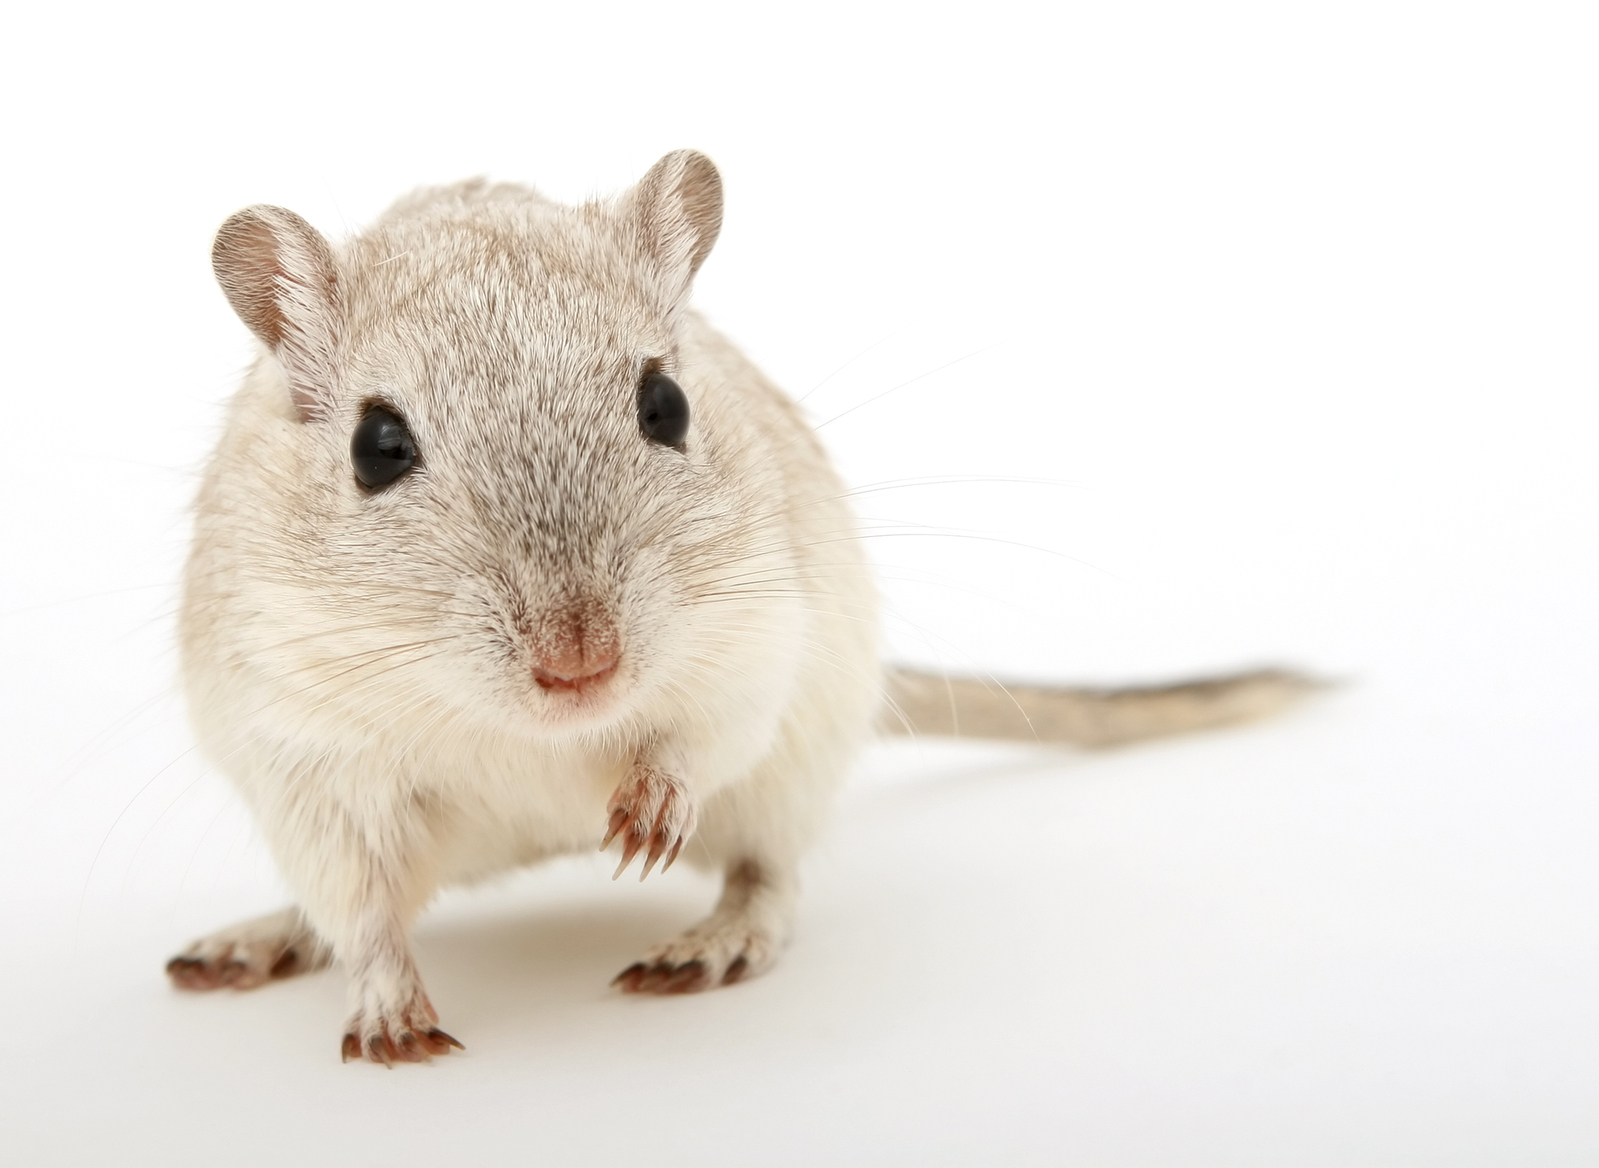 rodent isolated on white, macro closeup